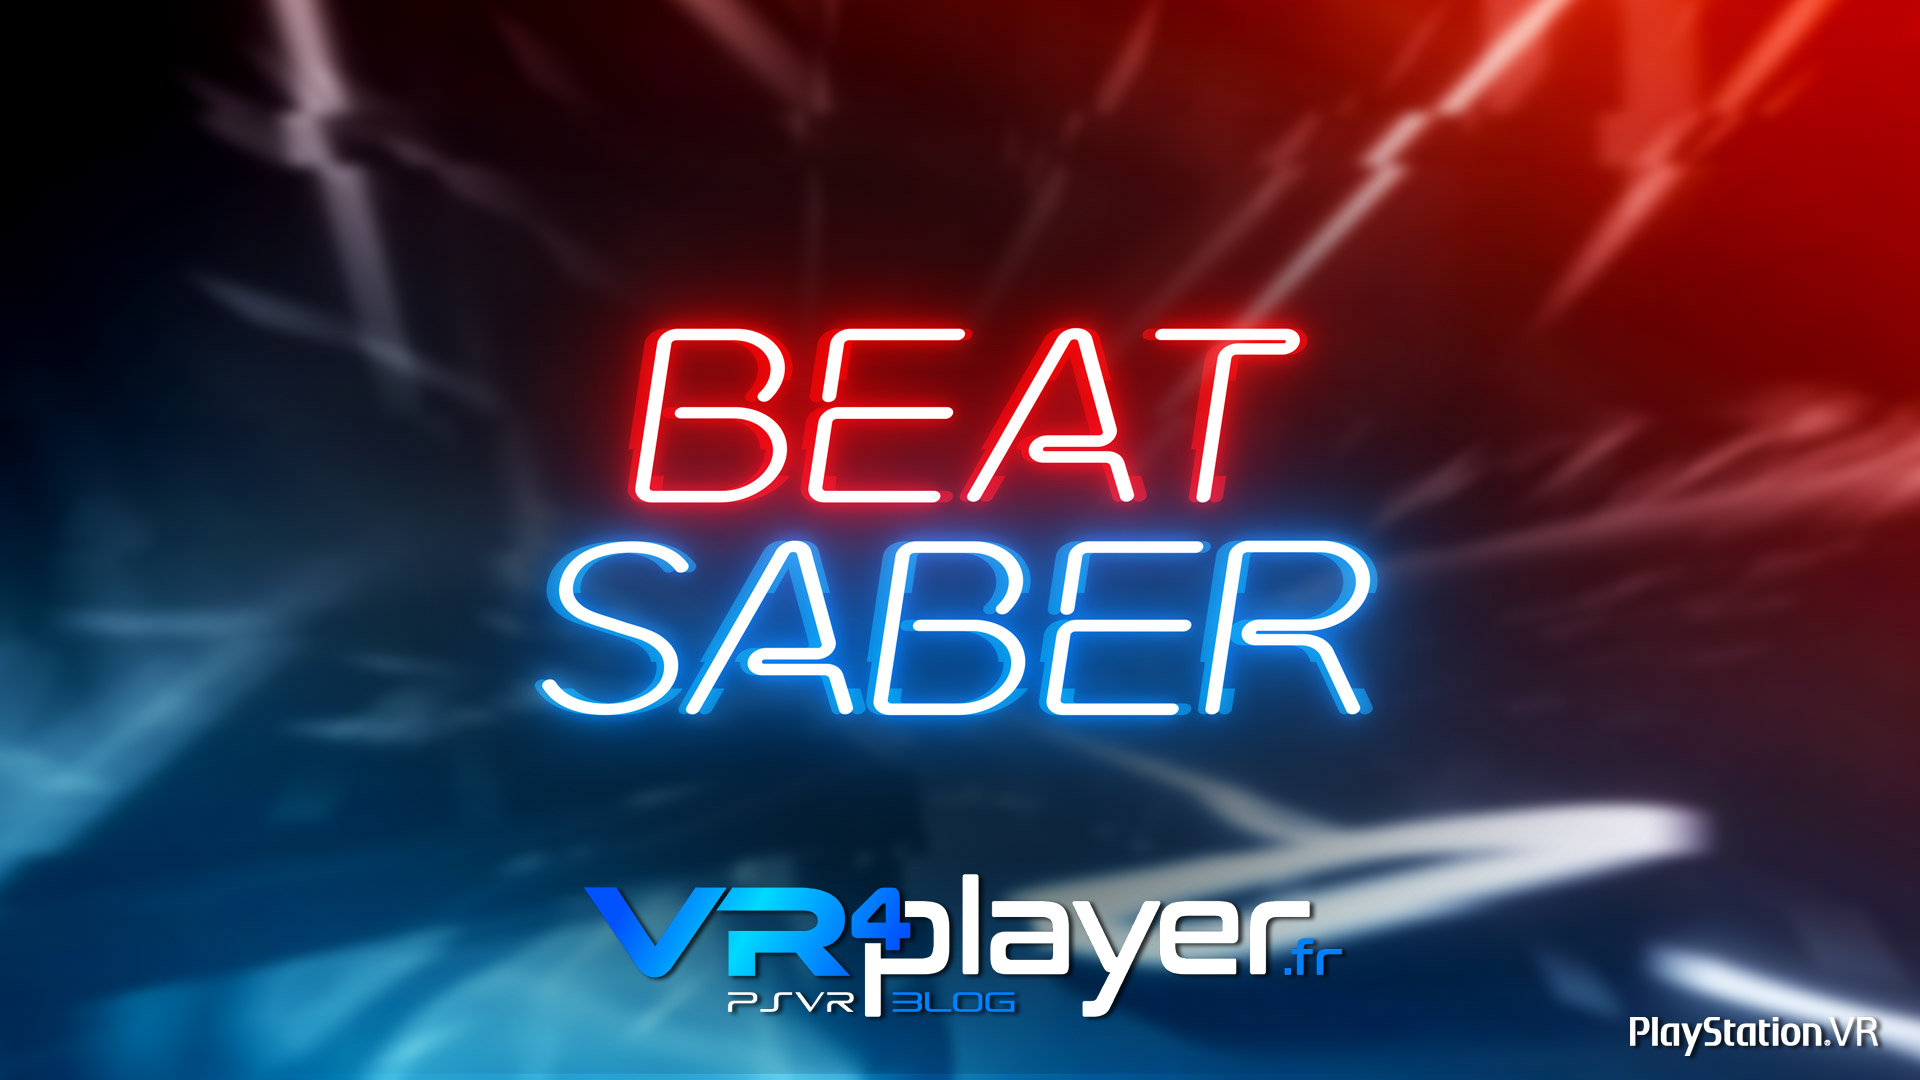 BEAT SABER PSVR vr4player